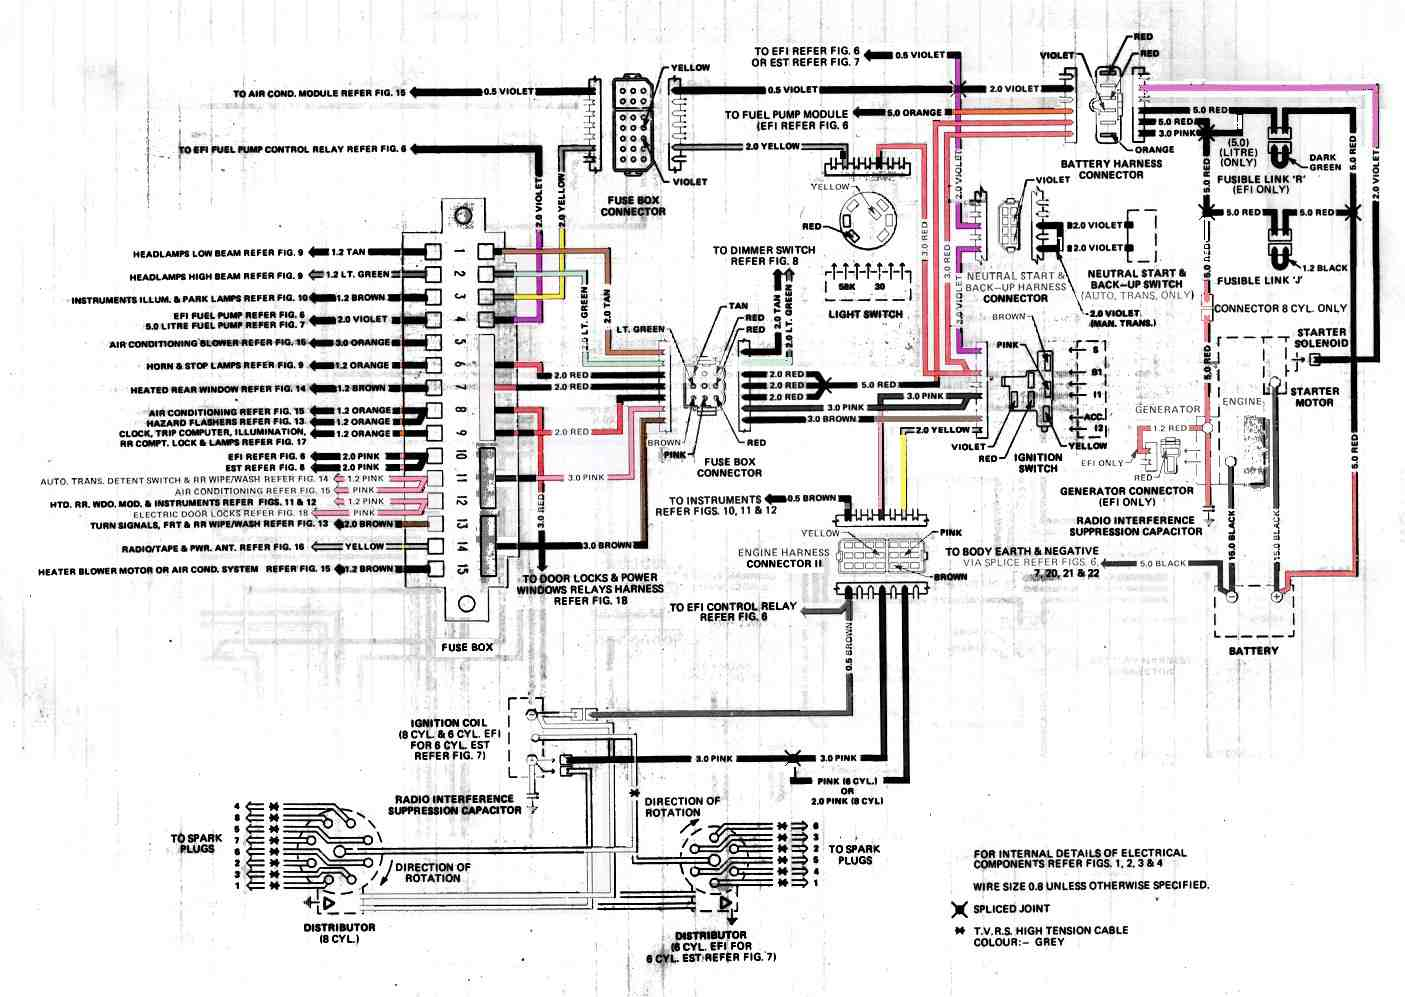 Commodore wiring diagrams hvac wiring diagram symbols basic of holden car manuals wiring diagrams pdf fault codes generator electrical wiring diagram of holden vk commodore cheapraybanclubmaster Gallery